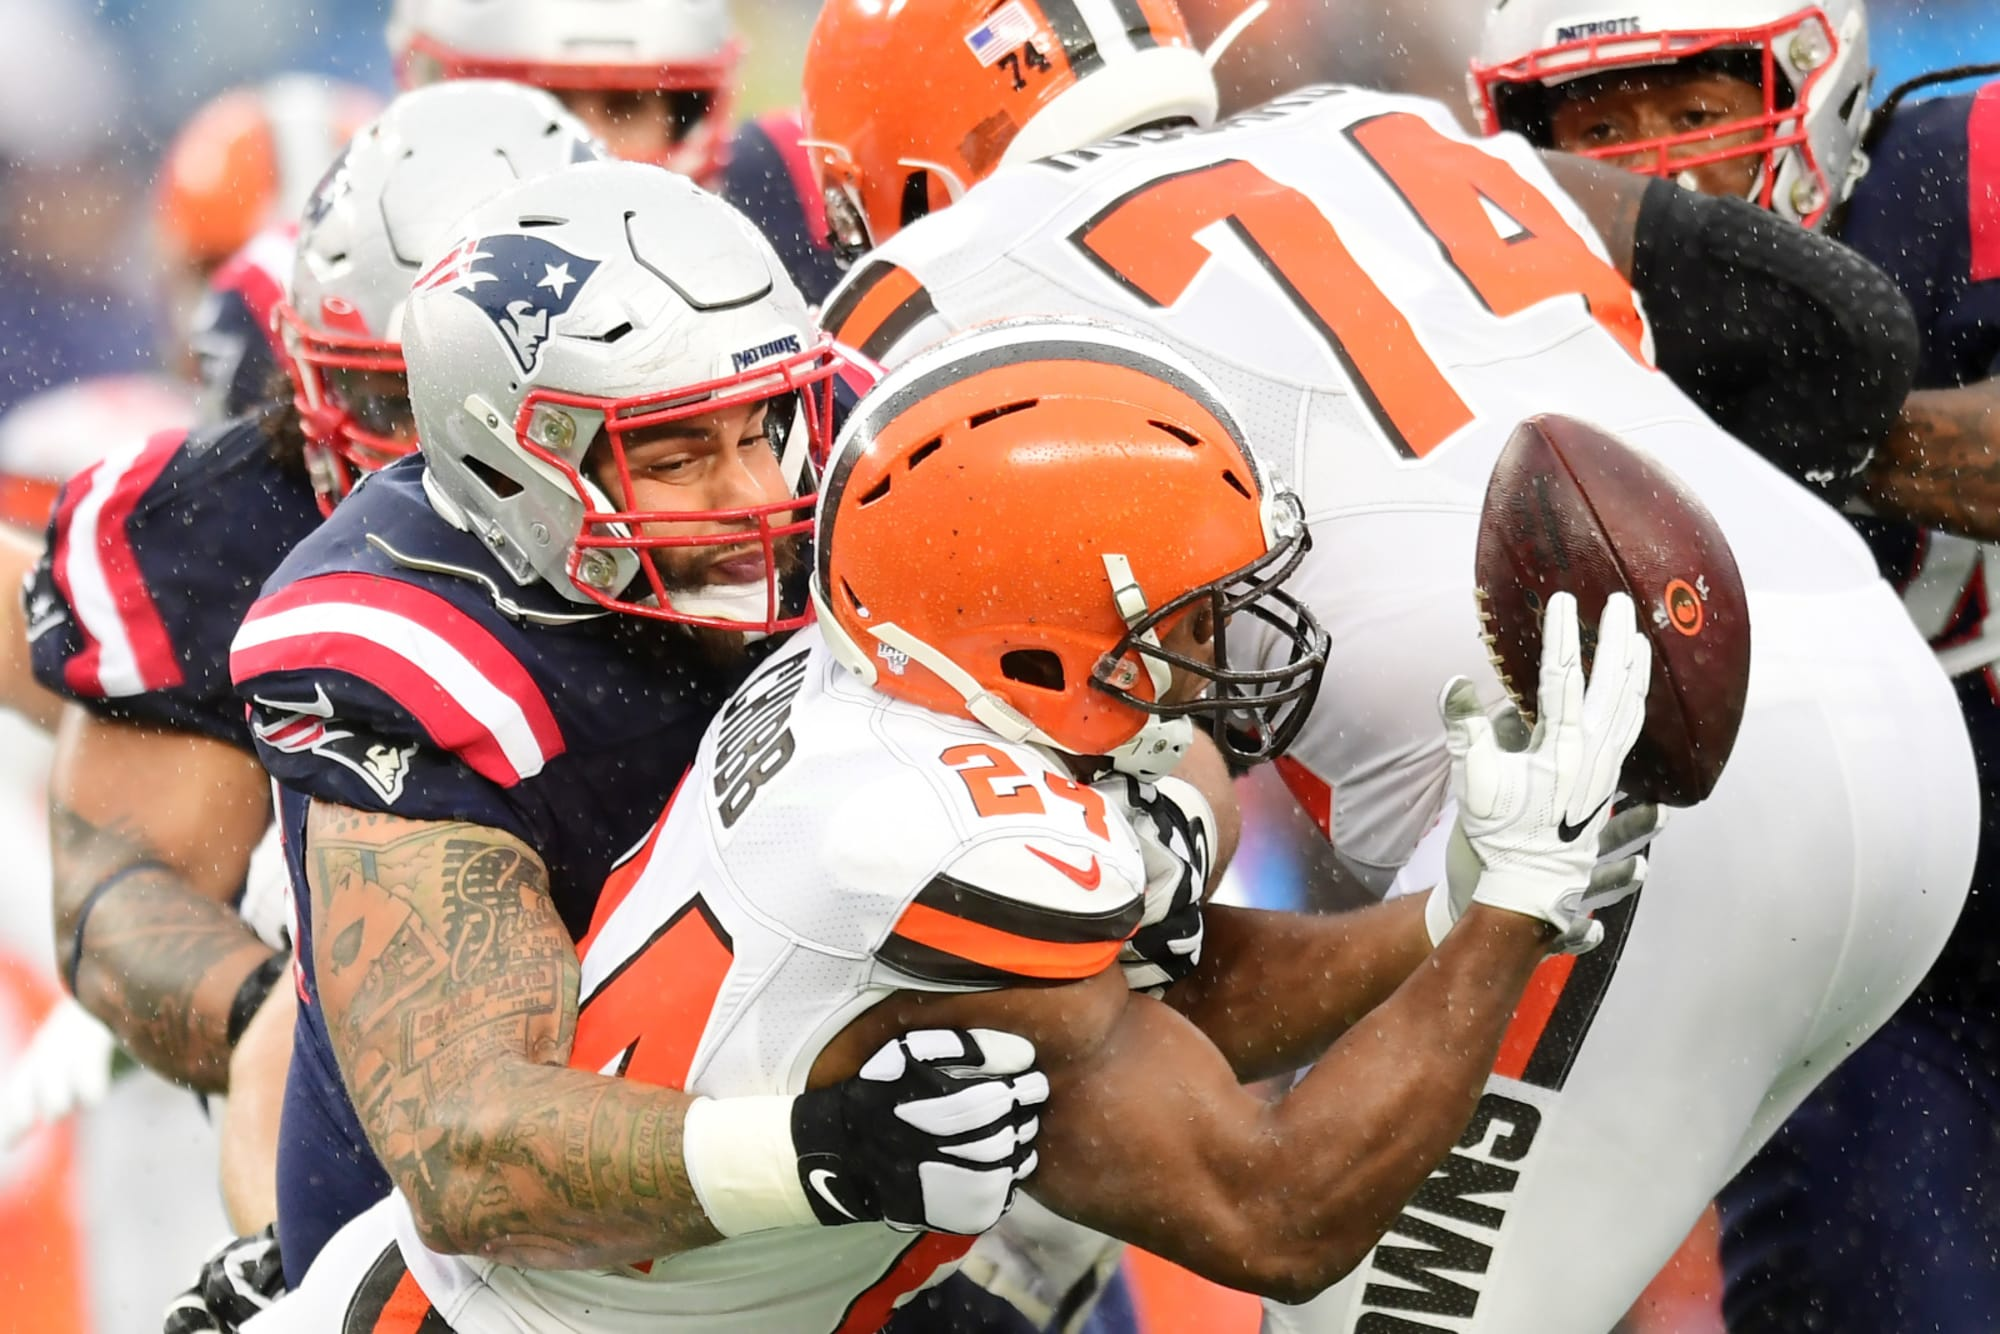 Cleveland Browns: Studs and duds vs. Patriots in Week 8